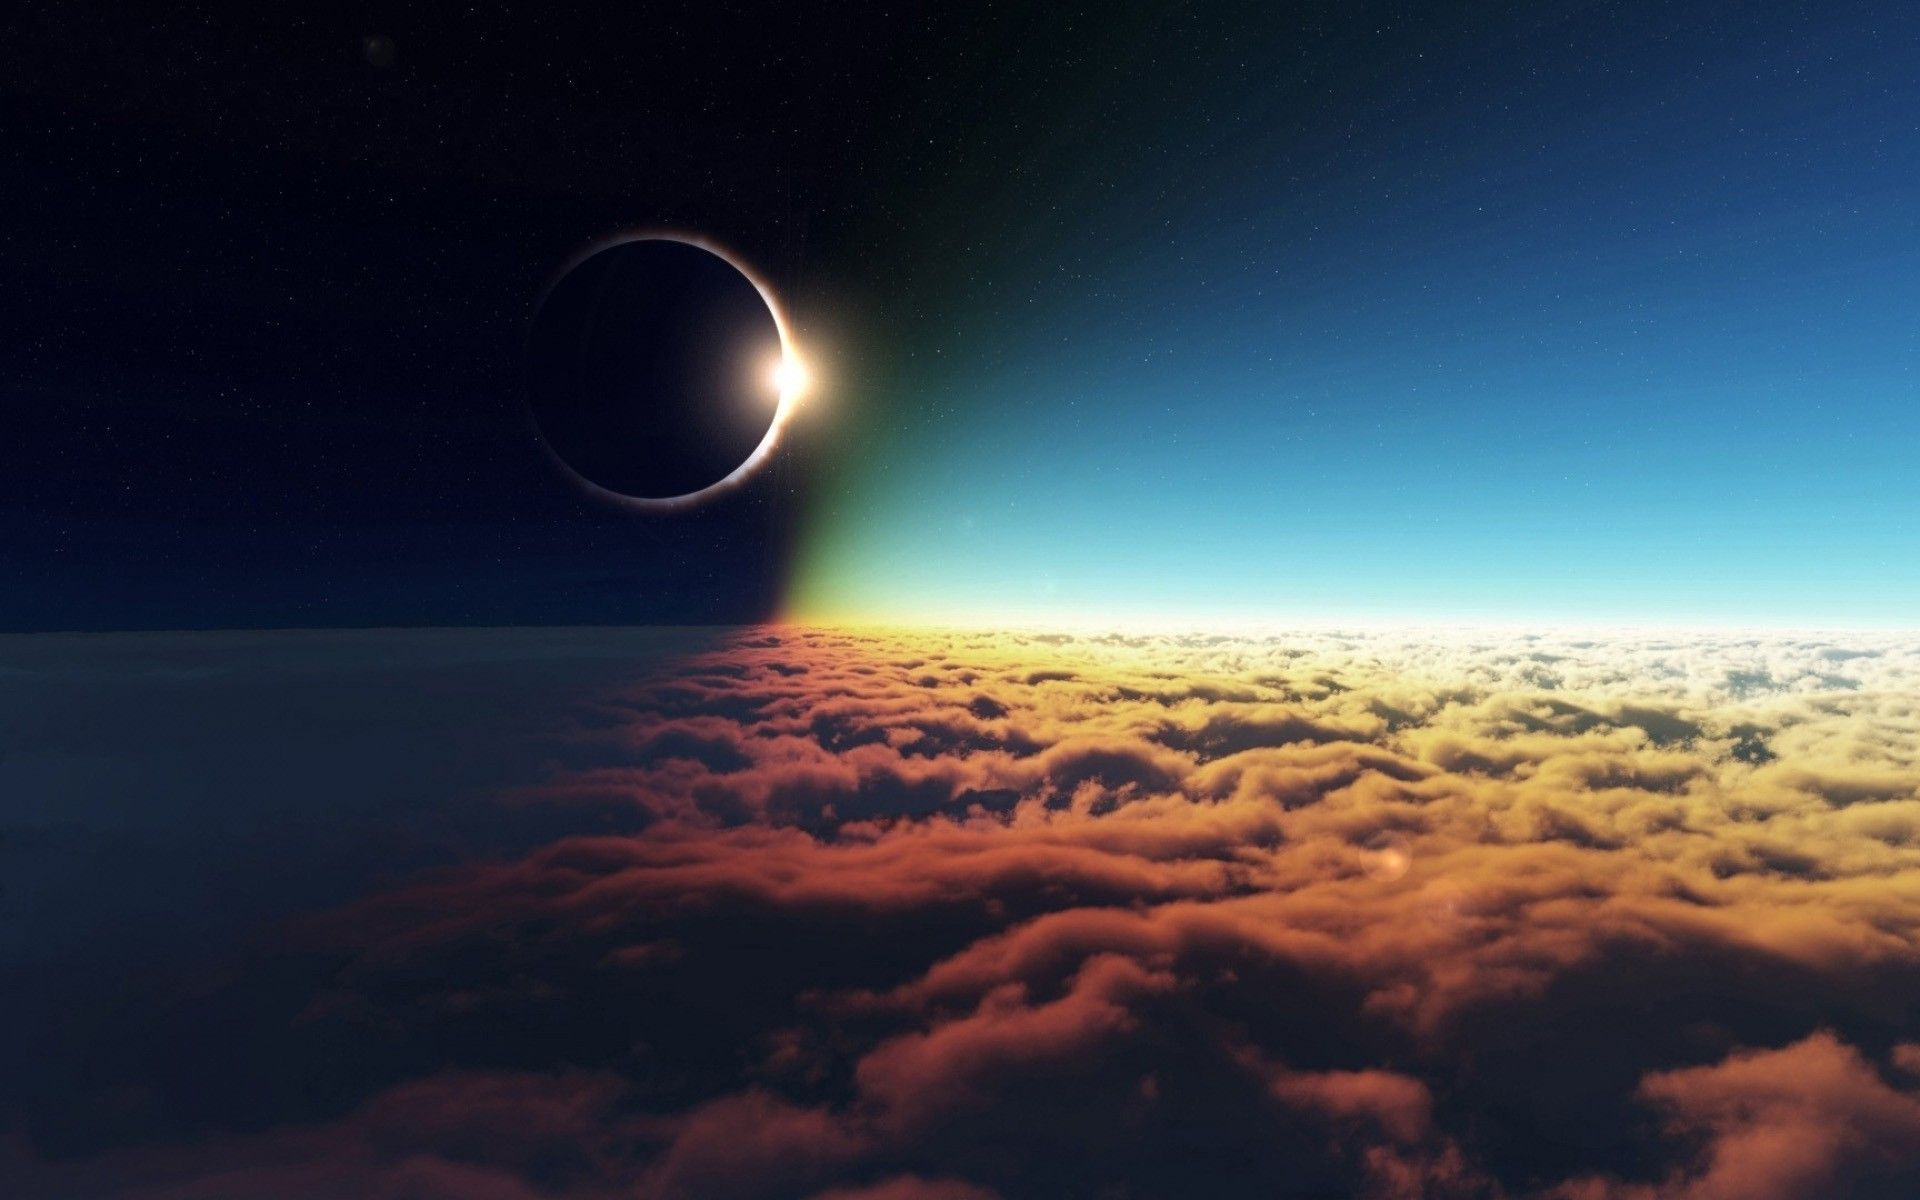 First Time in 99 Years: Total Solar Eclipse Crosses the United States | Egyptian Streets